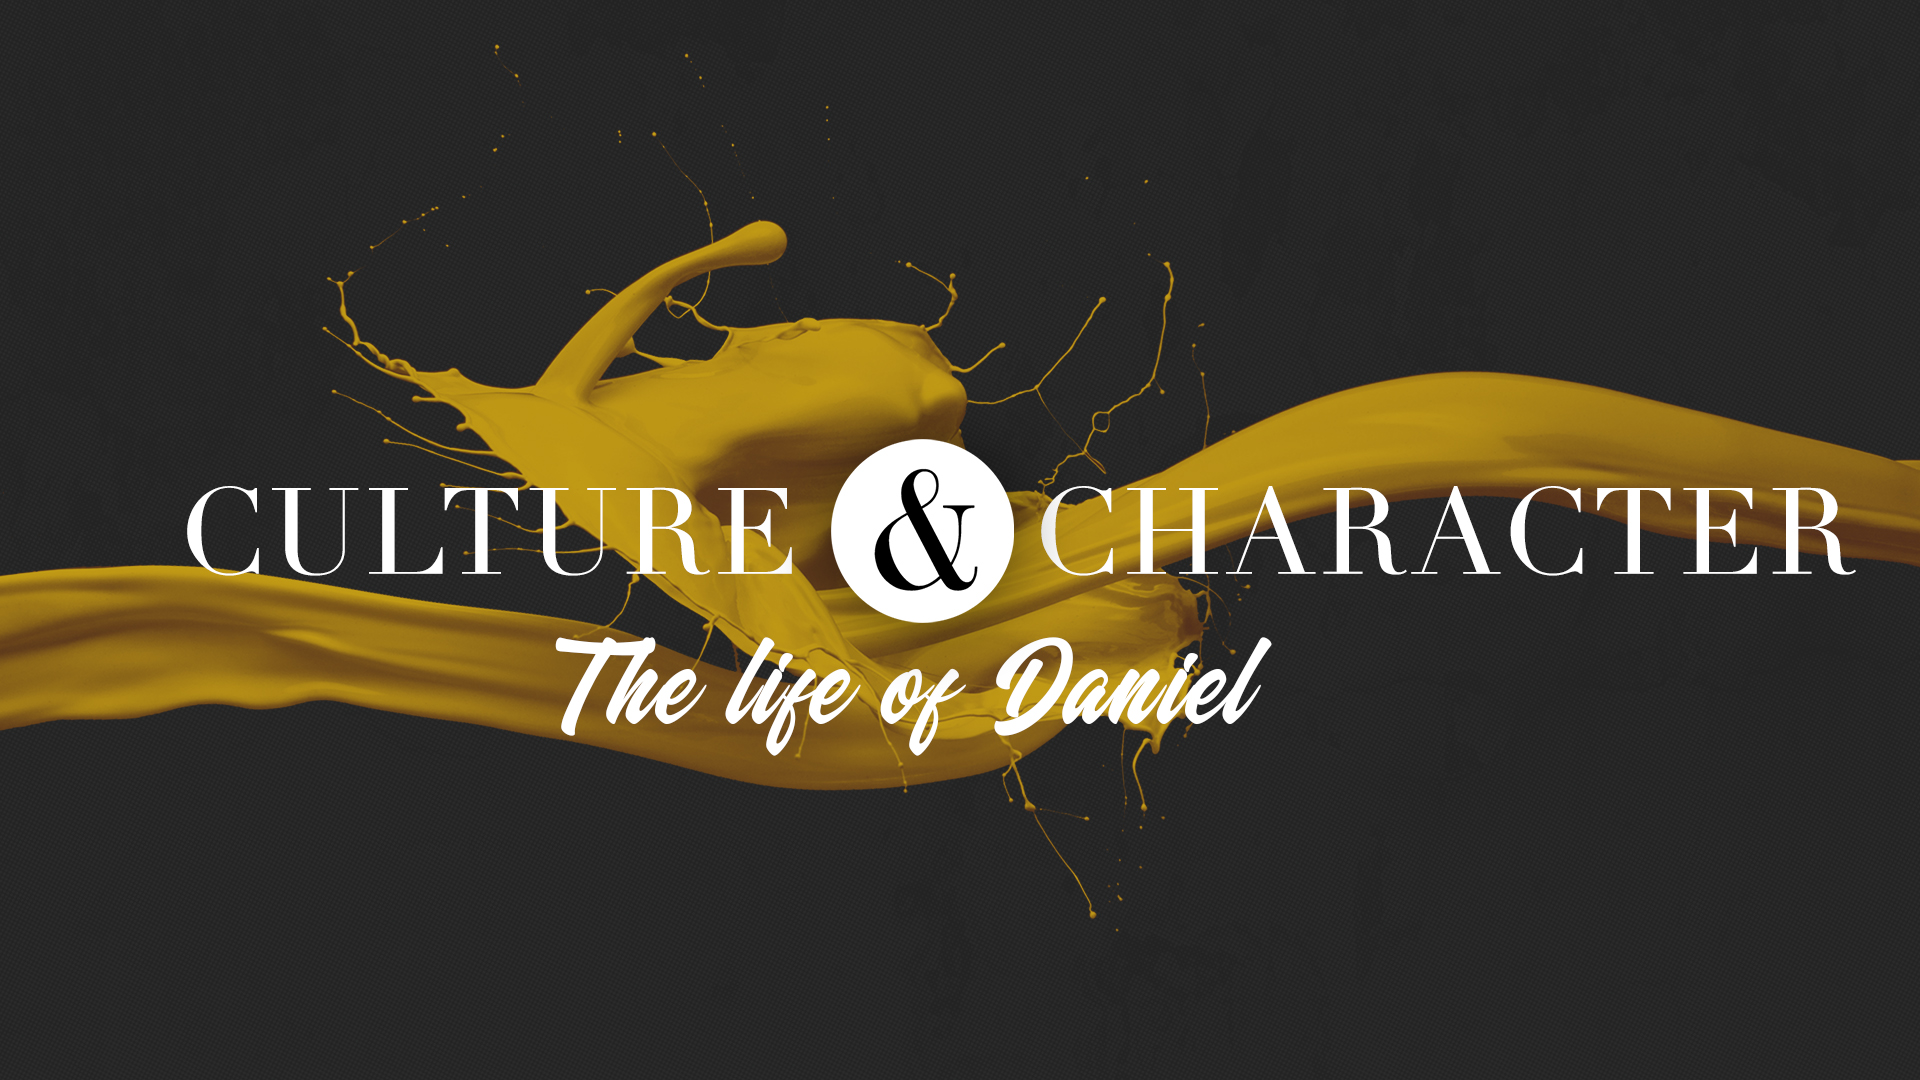 Culture & Character: The life of Daniel